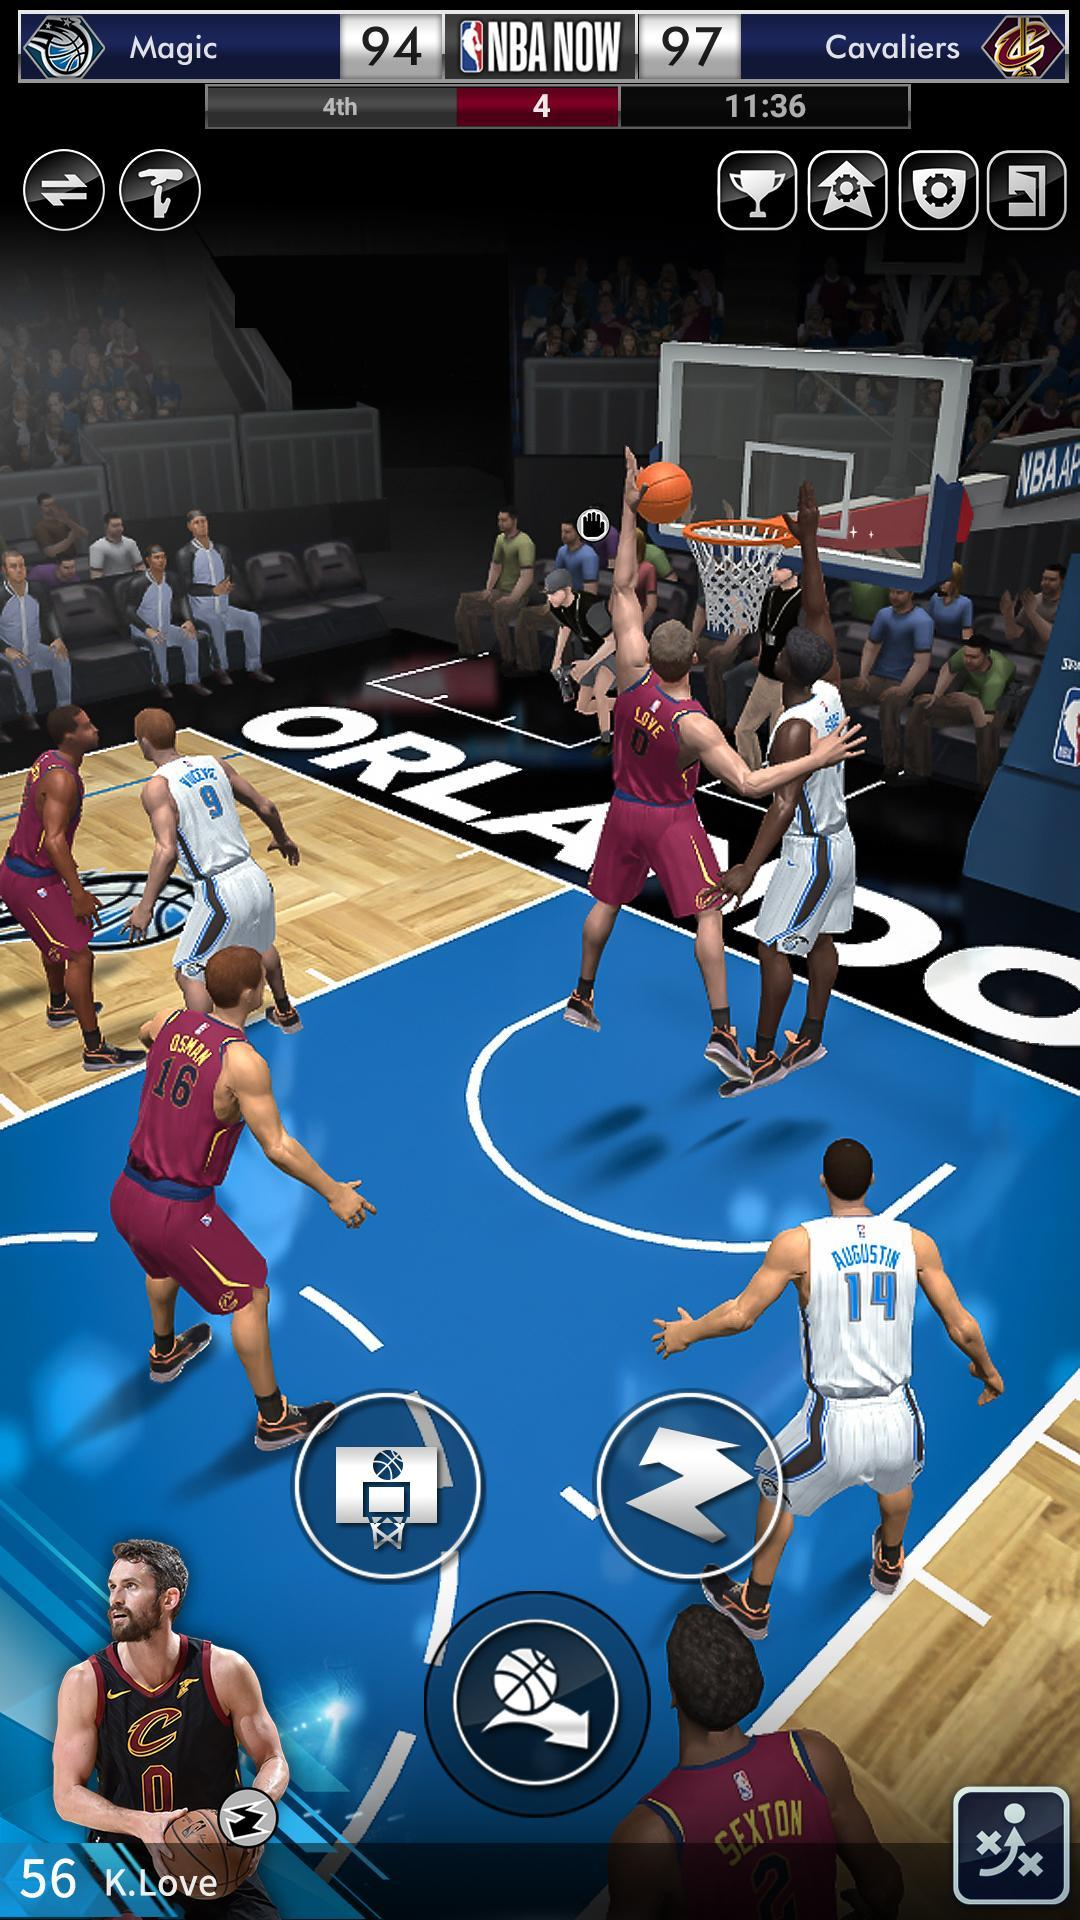 NBA NOW Mobile Basketball Game 1.5.4 Screenshot 17